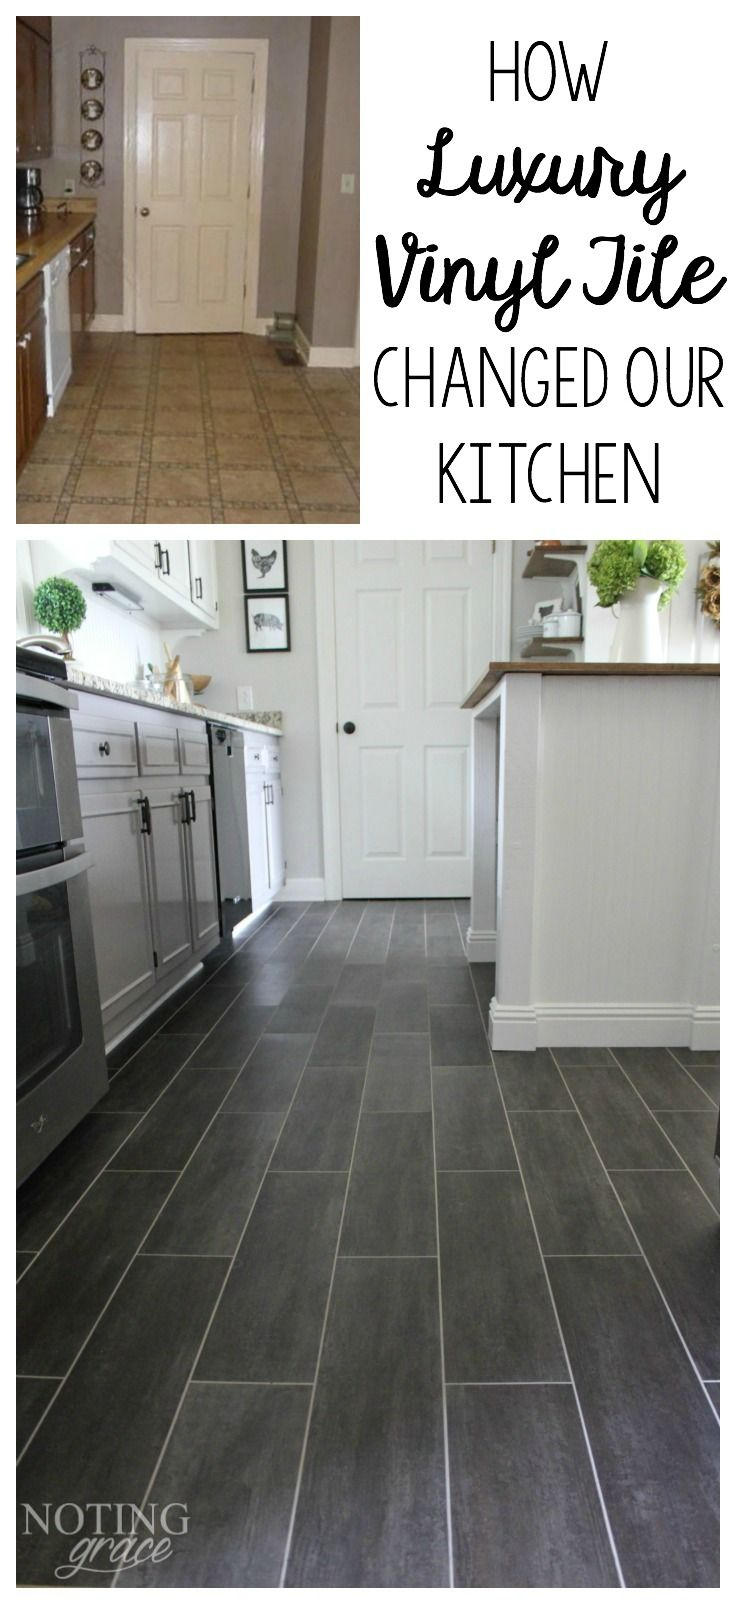 Diy kitchen flooring luxury vinyl tile vinyl tiles and for Kitchen flooring